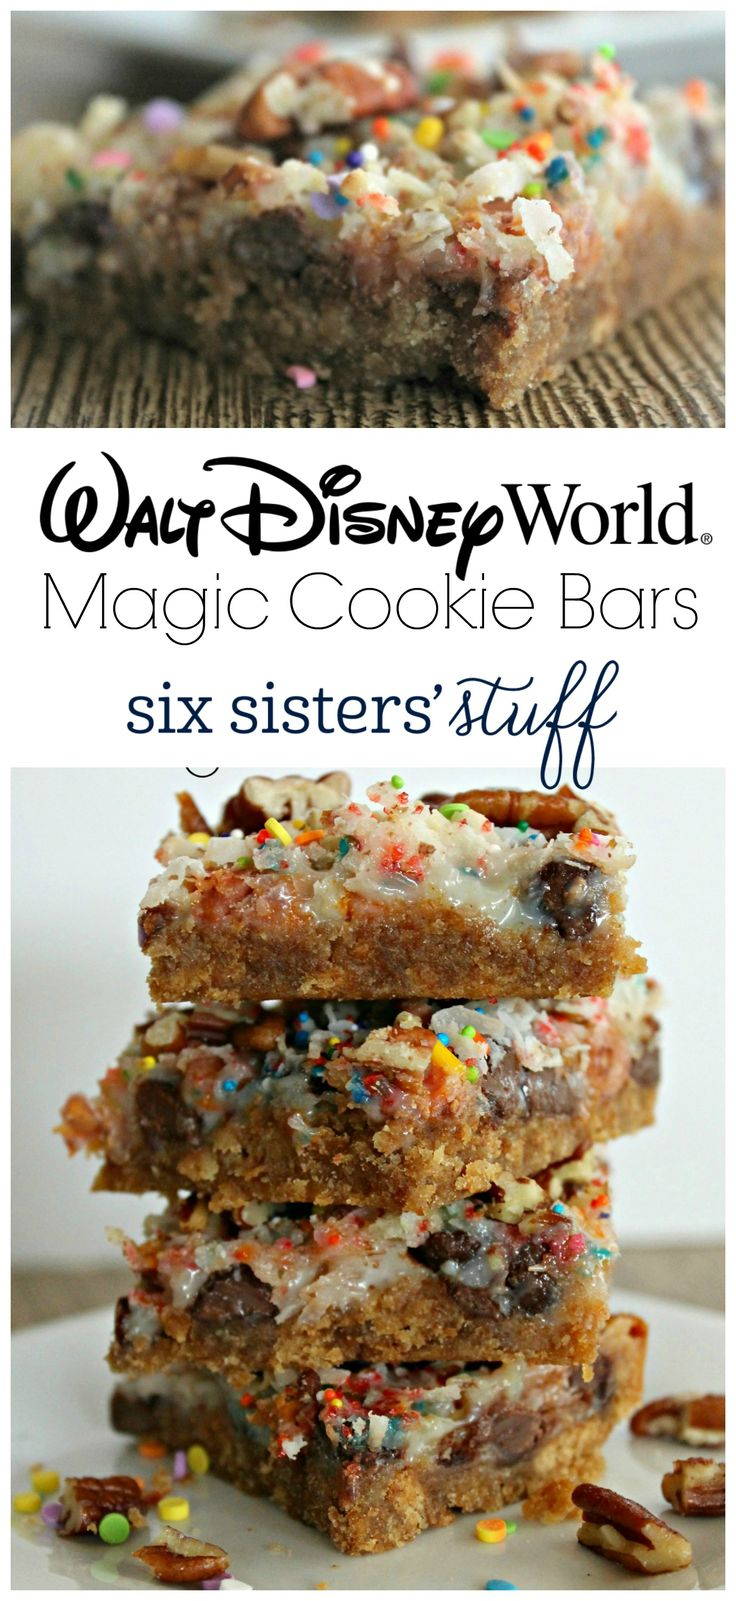 Walt Disney World Magic Cookie Bars